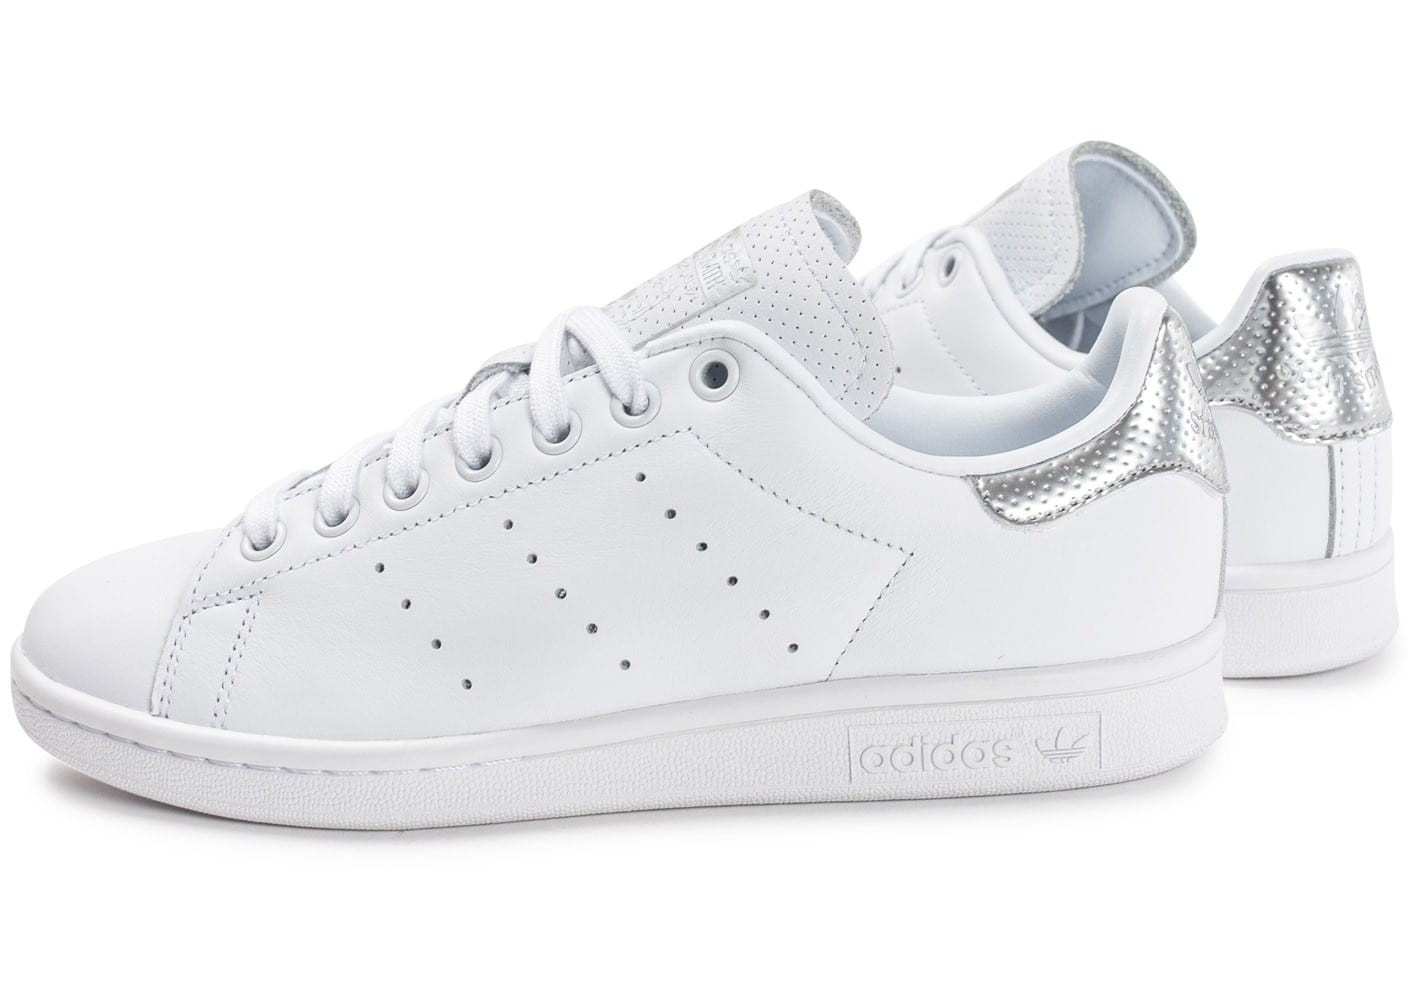 adidas stan smith femme blanche et or